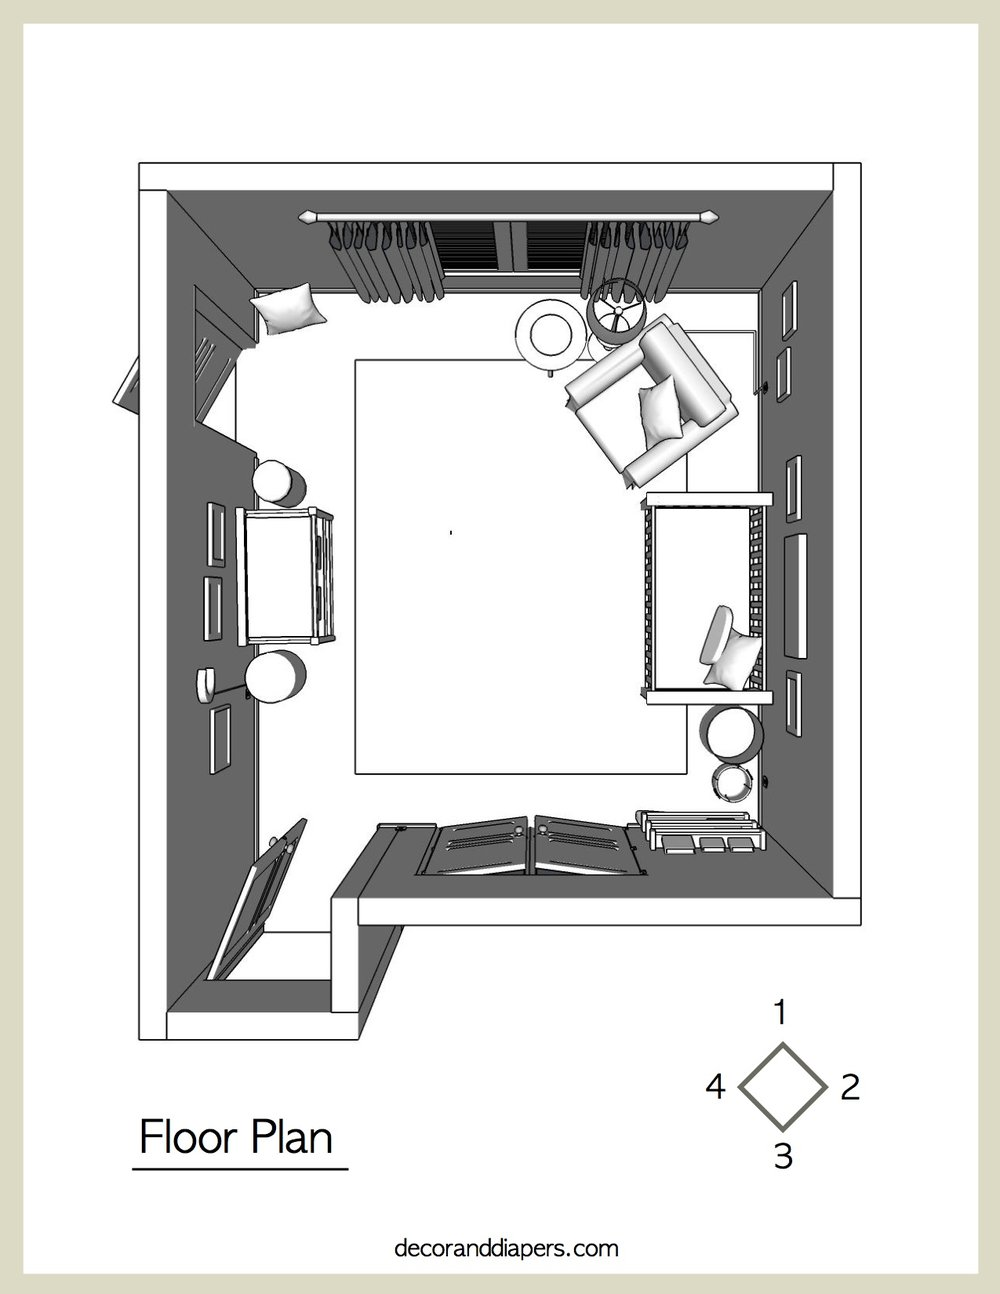 3D Floor Plan  - View your furniture layout to scale, true to size, according to your room dimensions